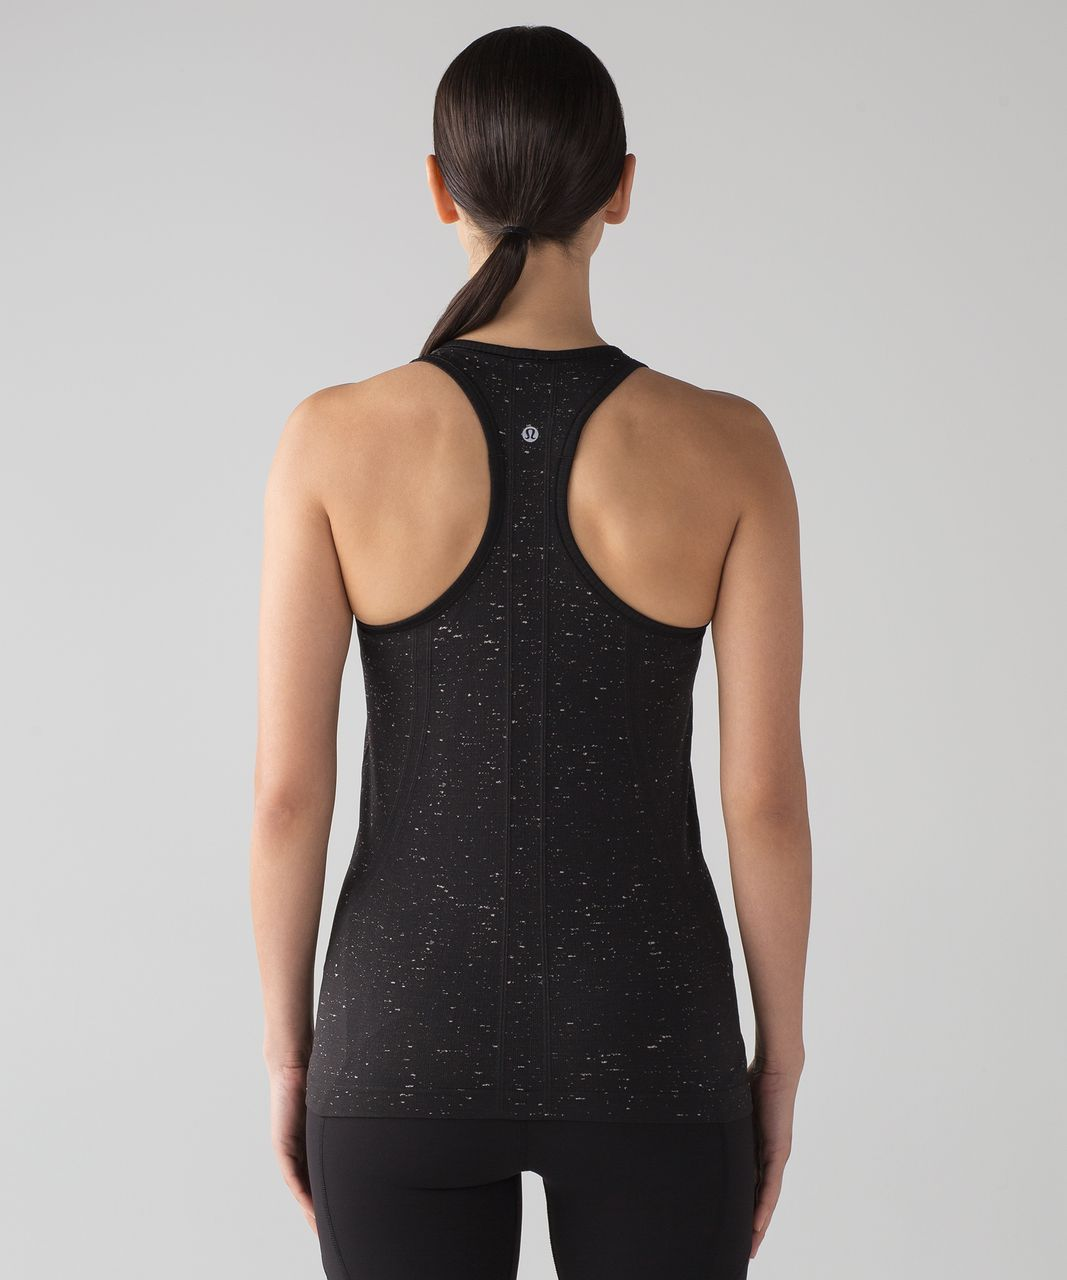 Lululemon Swiftly Tech Racerback - Black / White (02/2017 release)